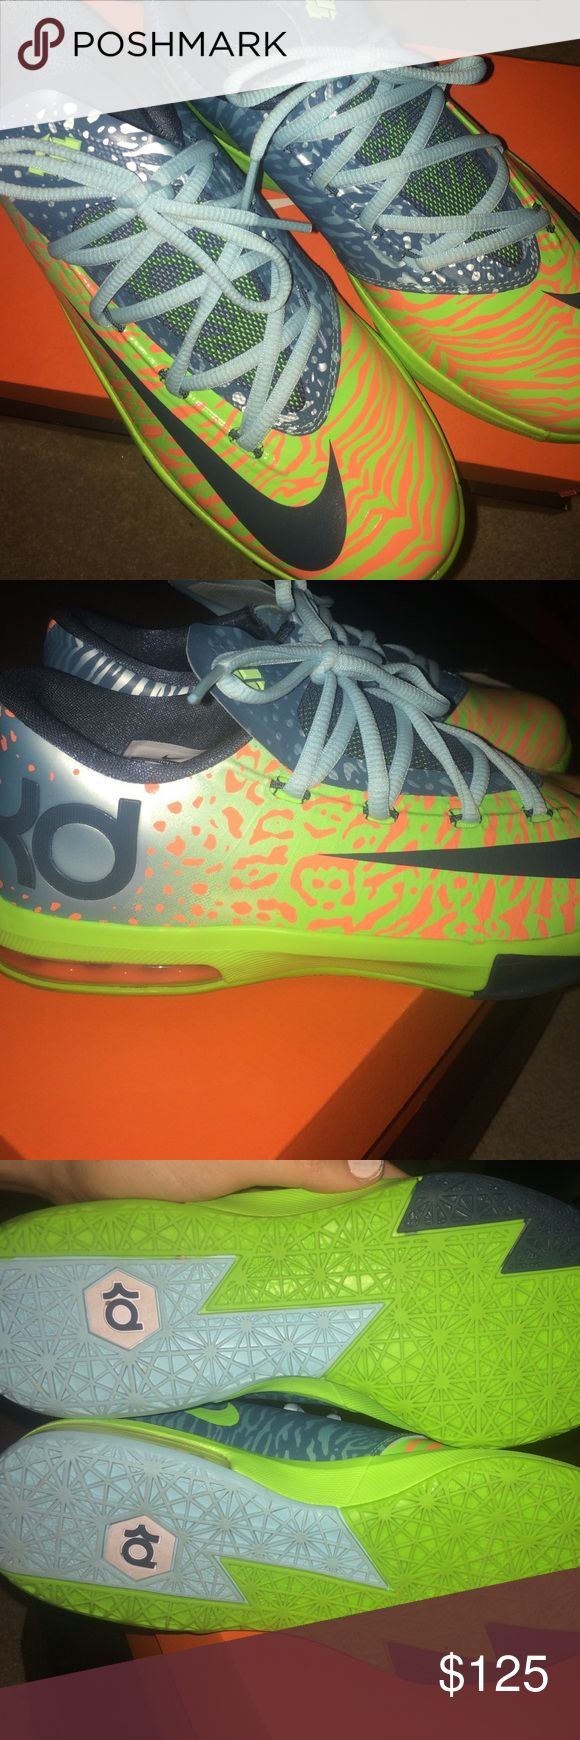 Nike KD VI Liger sneakers size 5y / 7.5 womens Neon green and orange sneakers with tiger stripes and leopard print. Comes with light blue laces. Great condition. First photo is for reference Nike Shoes Sneakers